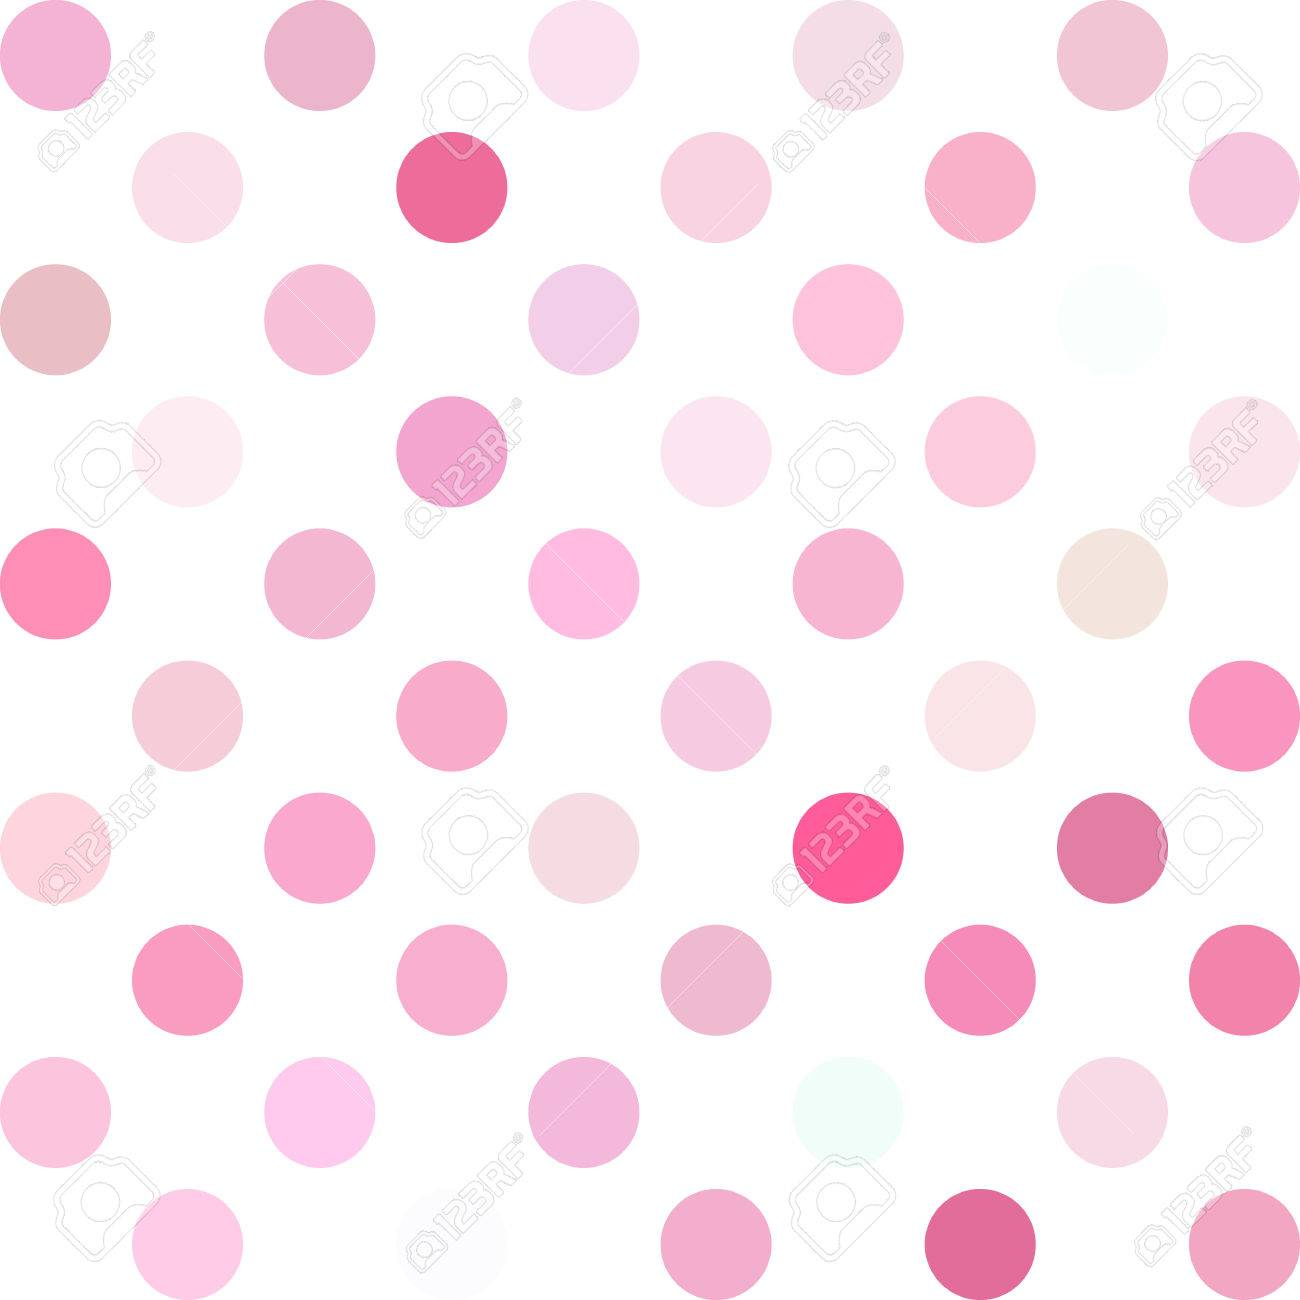 pink polka dots background creative design templates royalty free